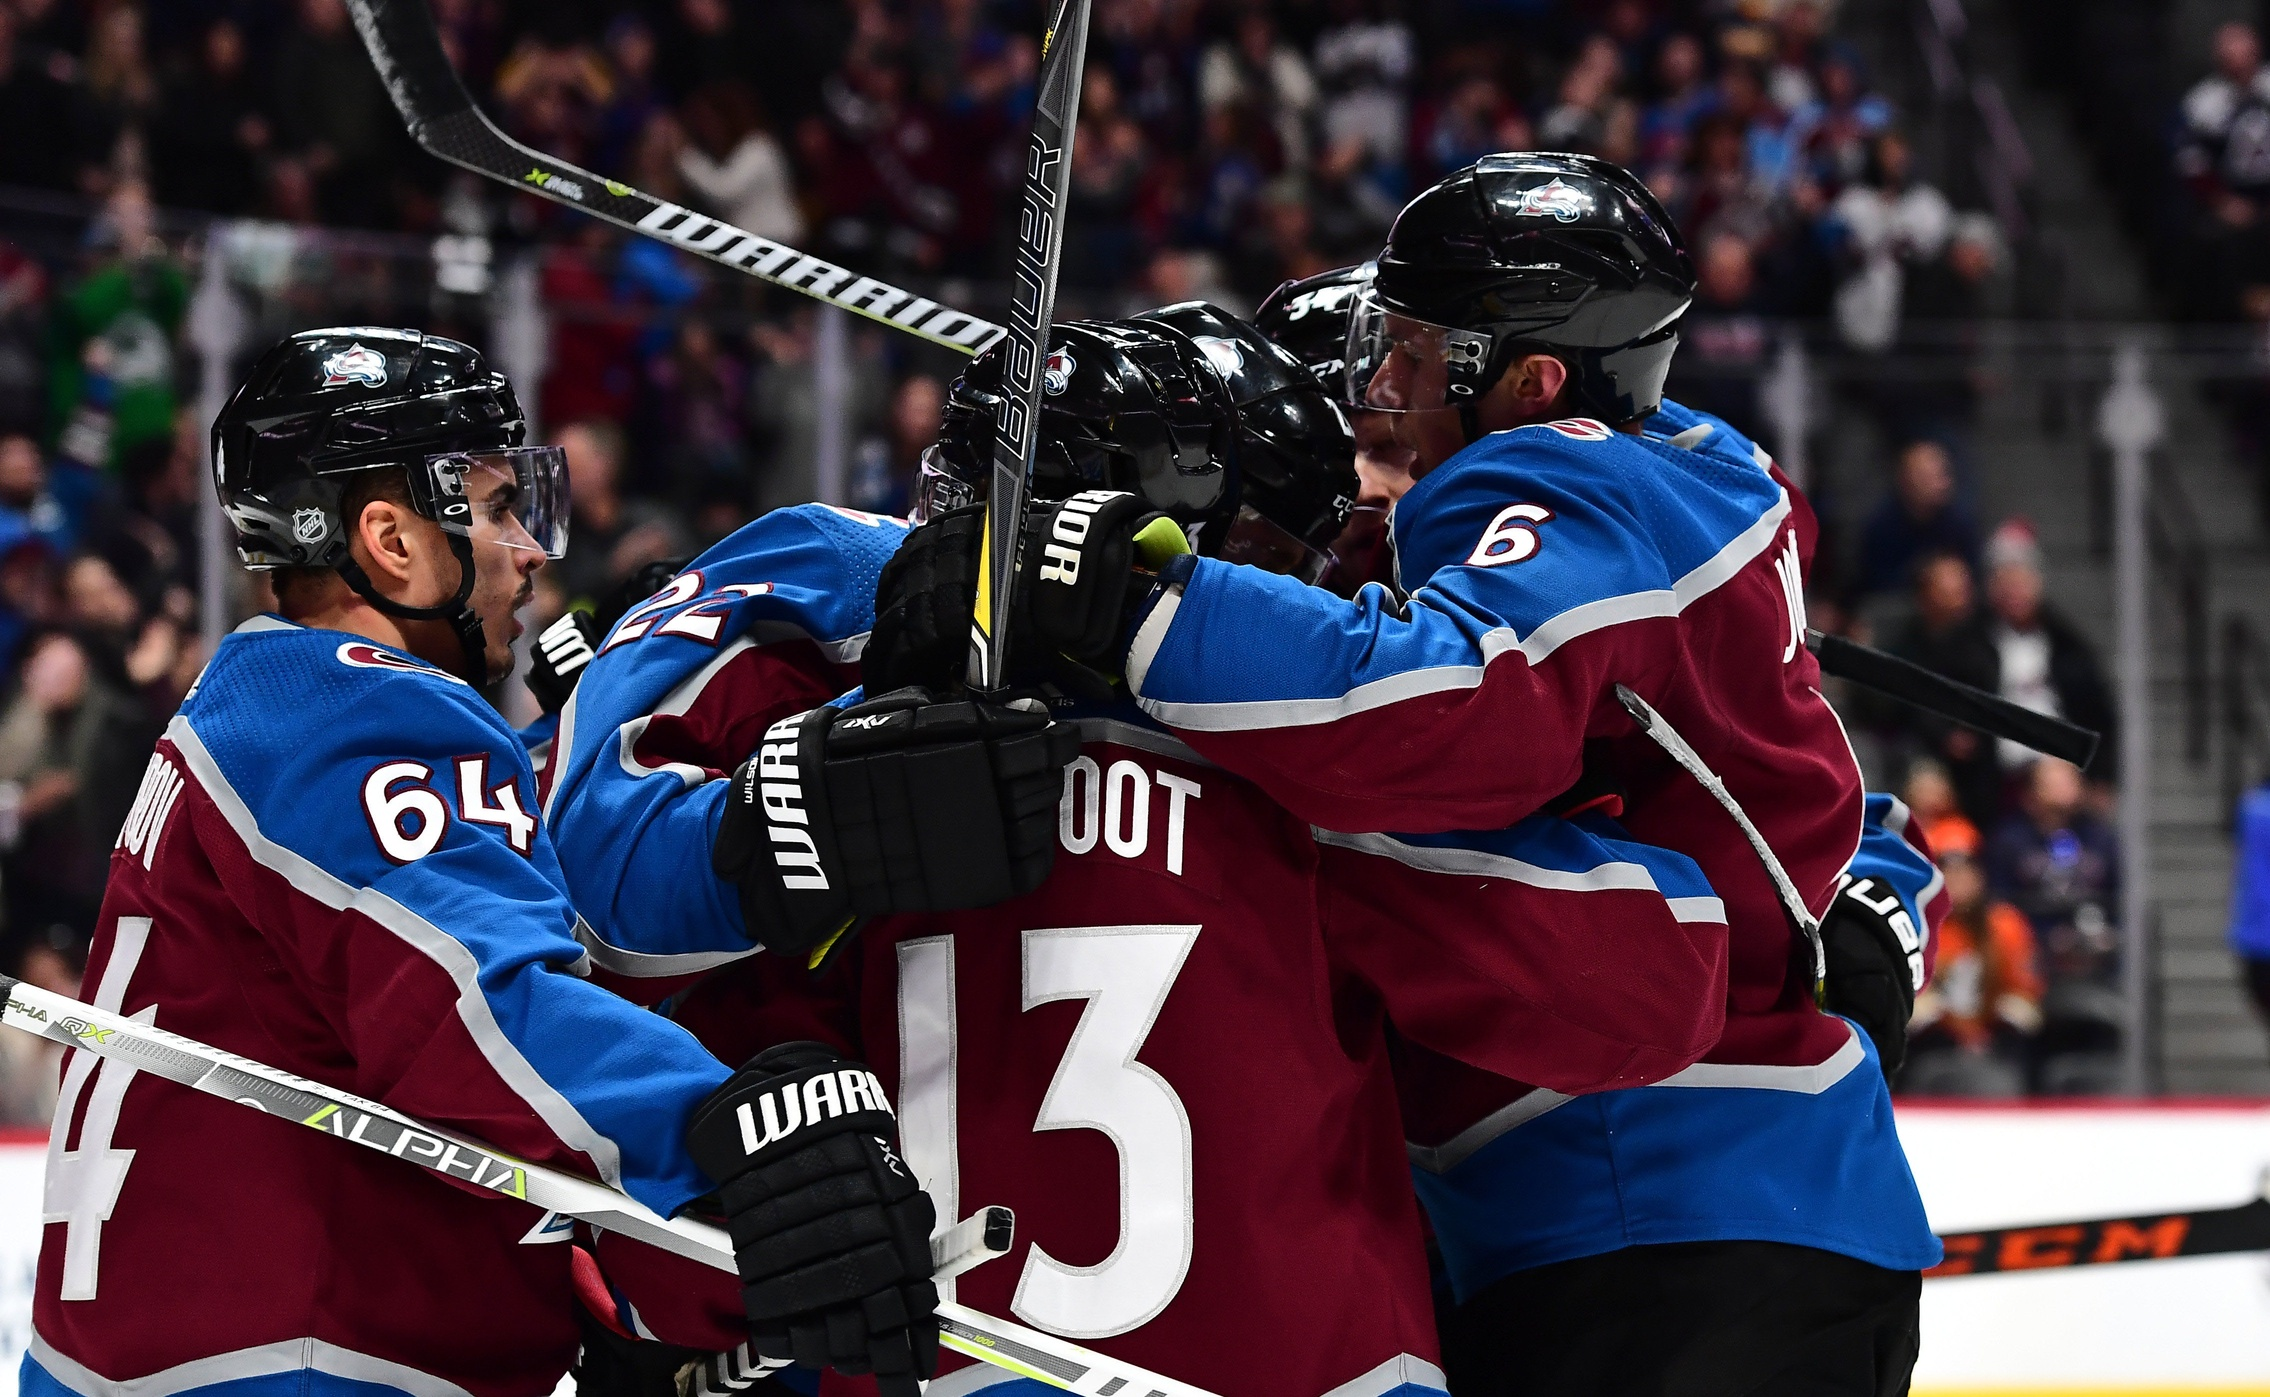 Avalanche streak extended to seven games after 3-1 win against Ducks